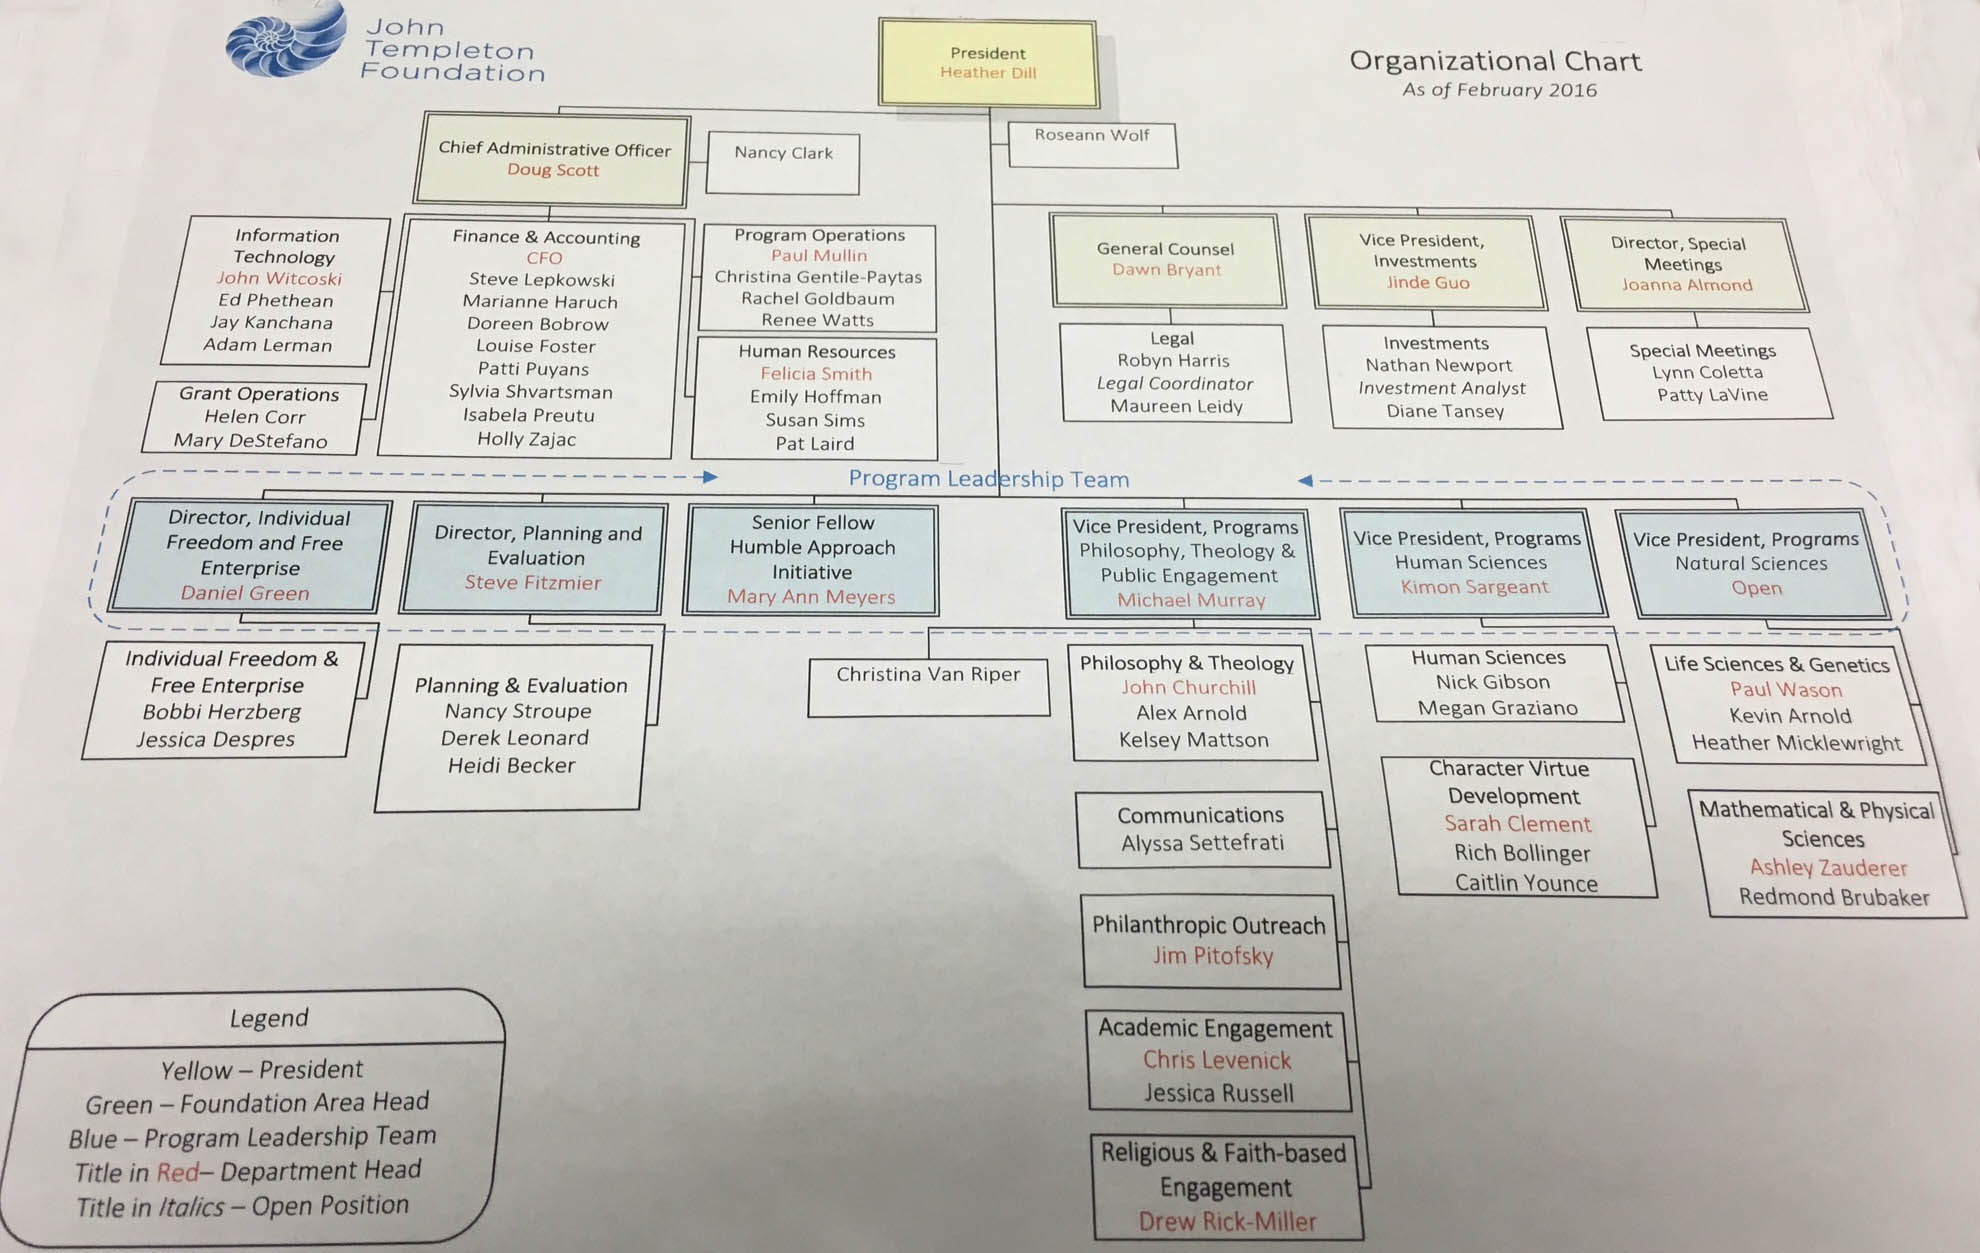 Apple Organizational Chart: JTF Org Chart Feb 16.jpg - Wikimedia Commons,Chart